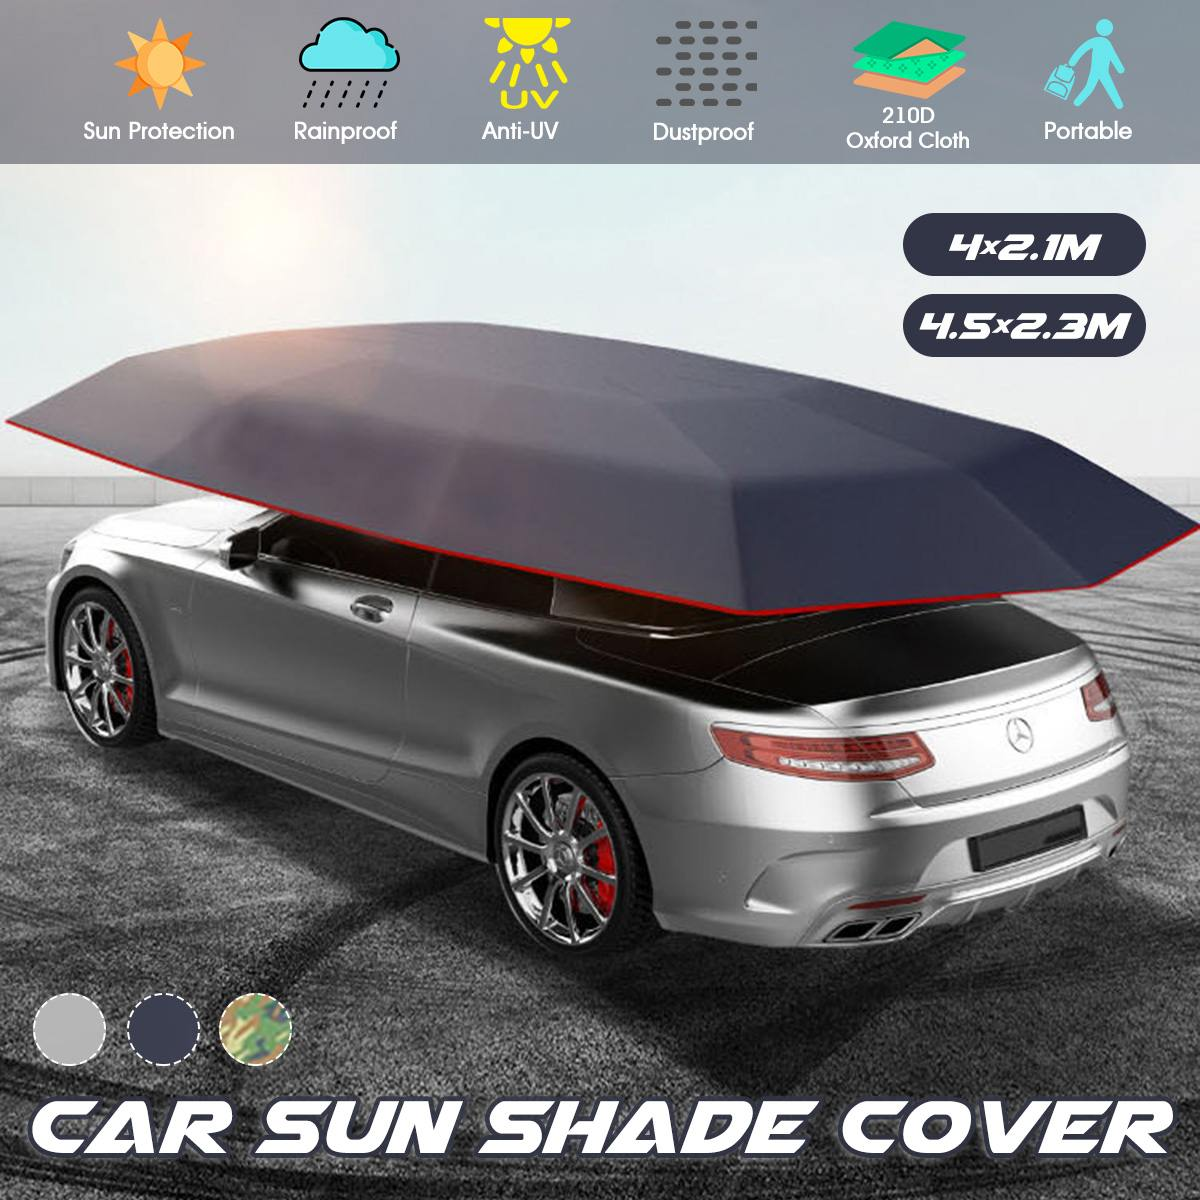 4.5x2.3M/4.2x2.1M Outdoor Car Vehicle Tent Car Umbrella Sun Shade Cover Oxford Cloth Polyester Covers (No Bracket)(China)